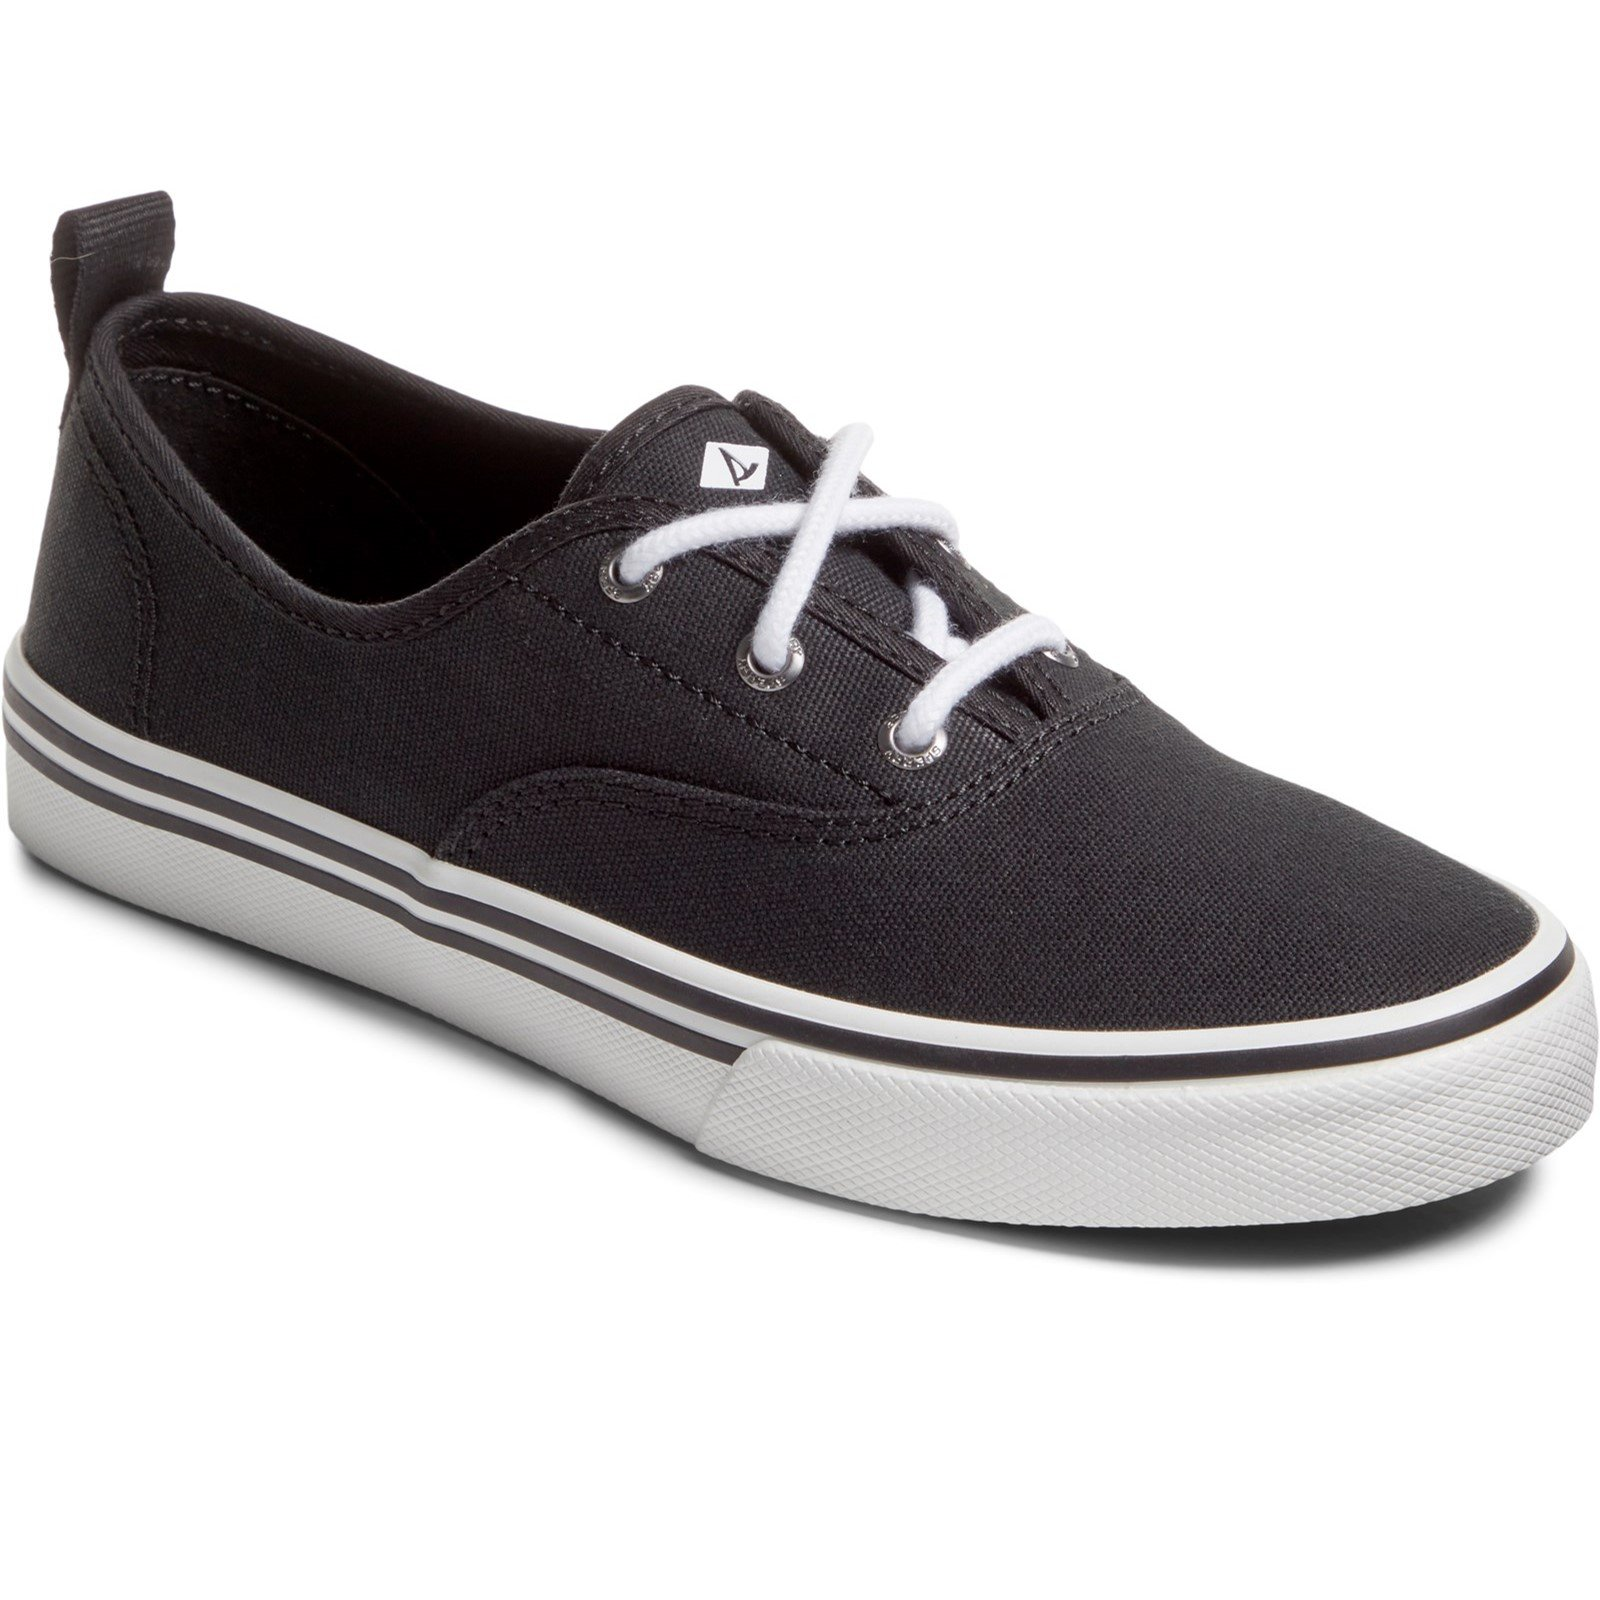 Sperry Women's Crest CVO Trainers Various Colours 32936 - Black 7